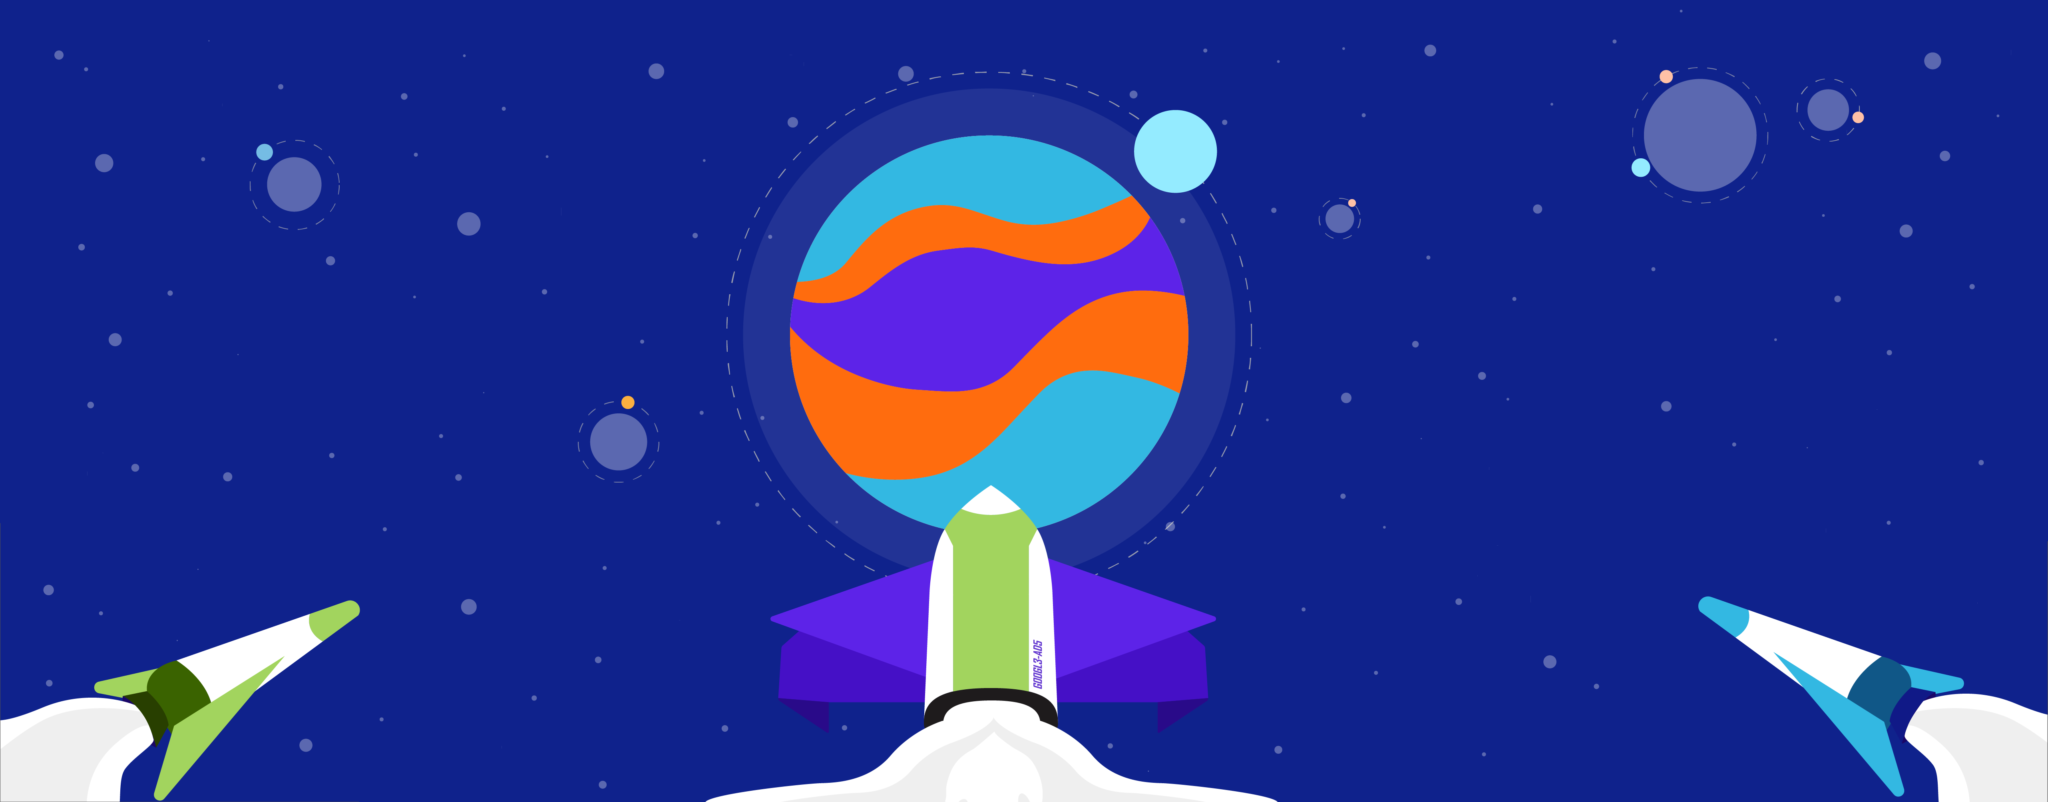 Skyrocketing your ROI with Google Ads